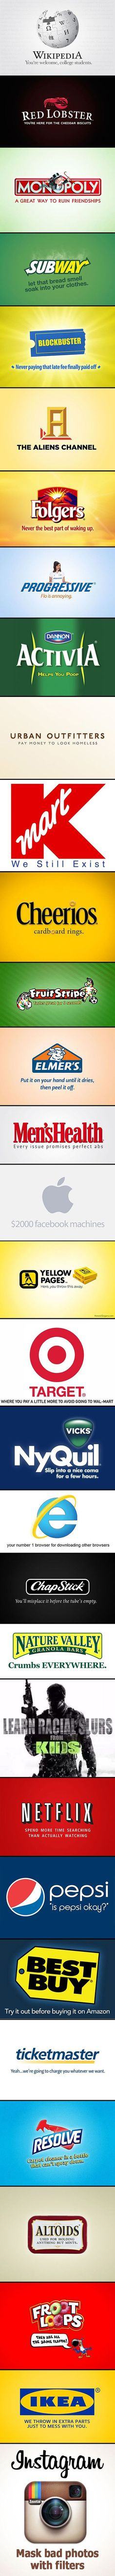 If company slogans were honest... hahaha